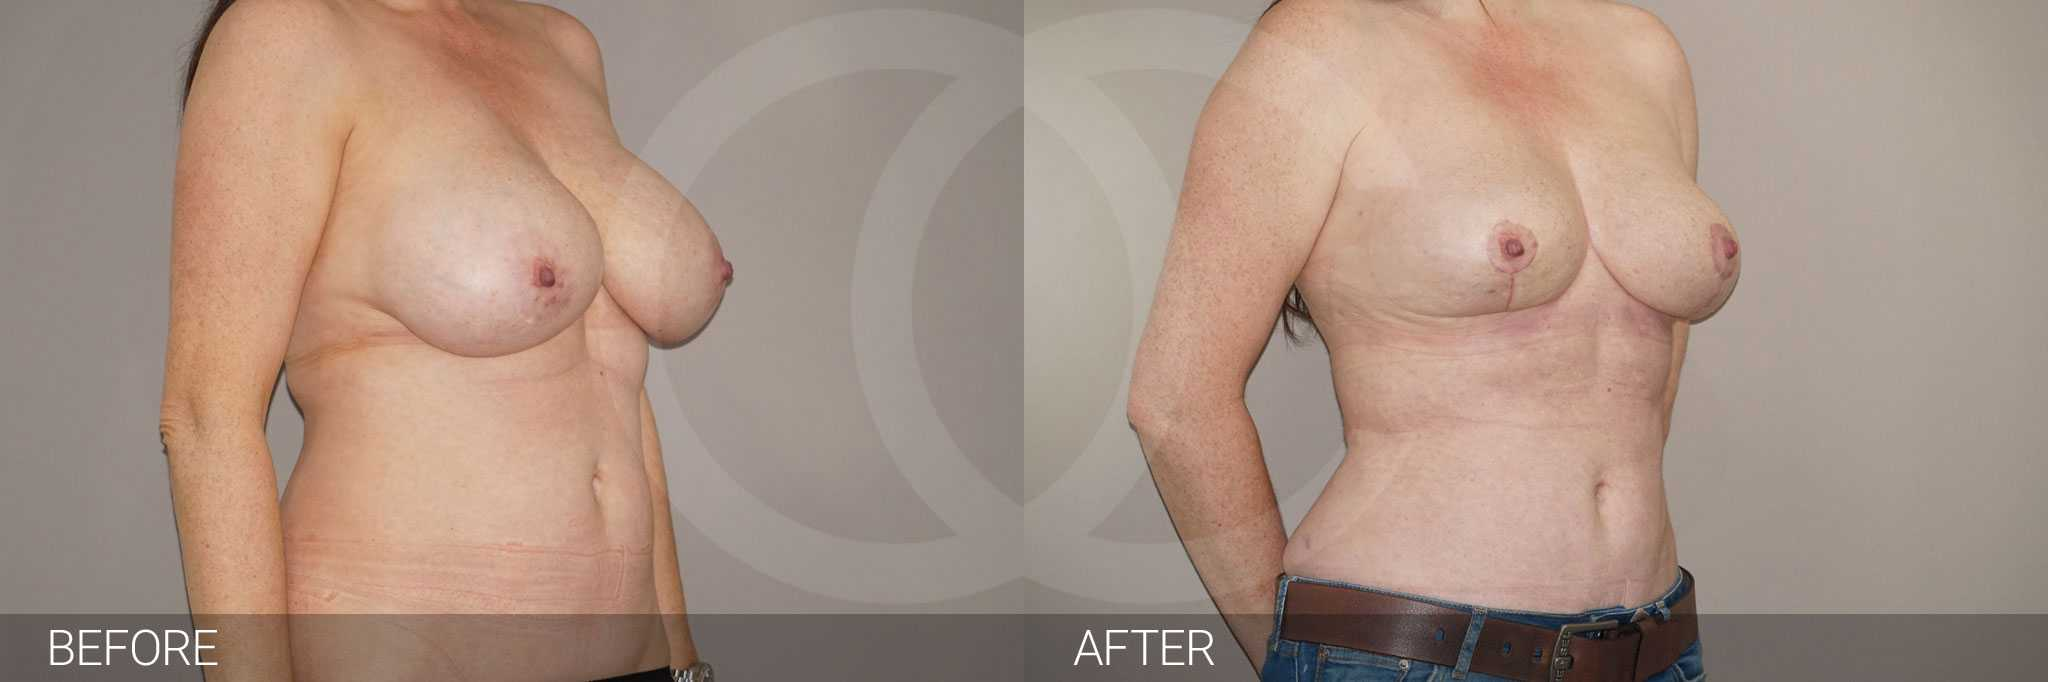 Breast Reduction Inverted-T-scar ante/post-op II